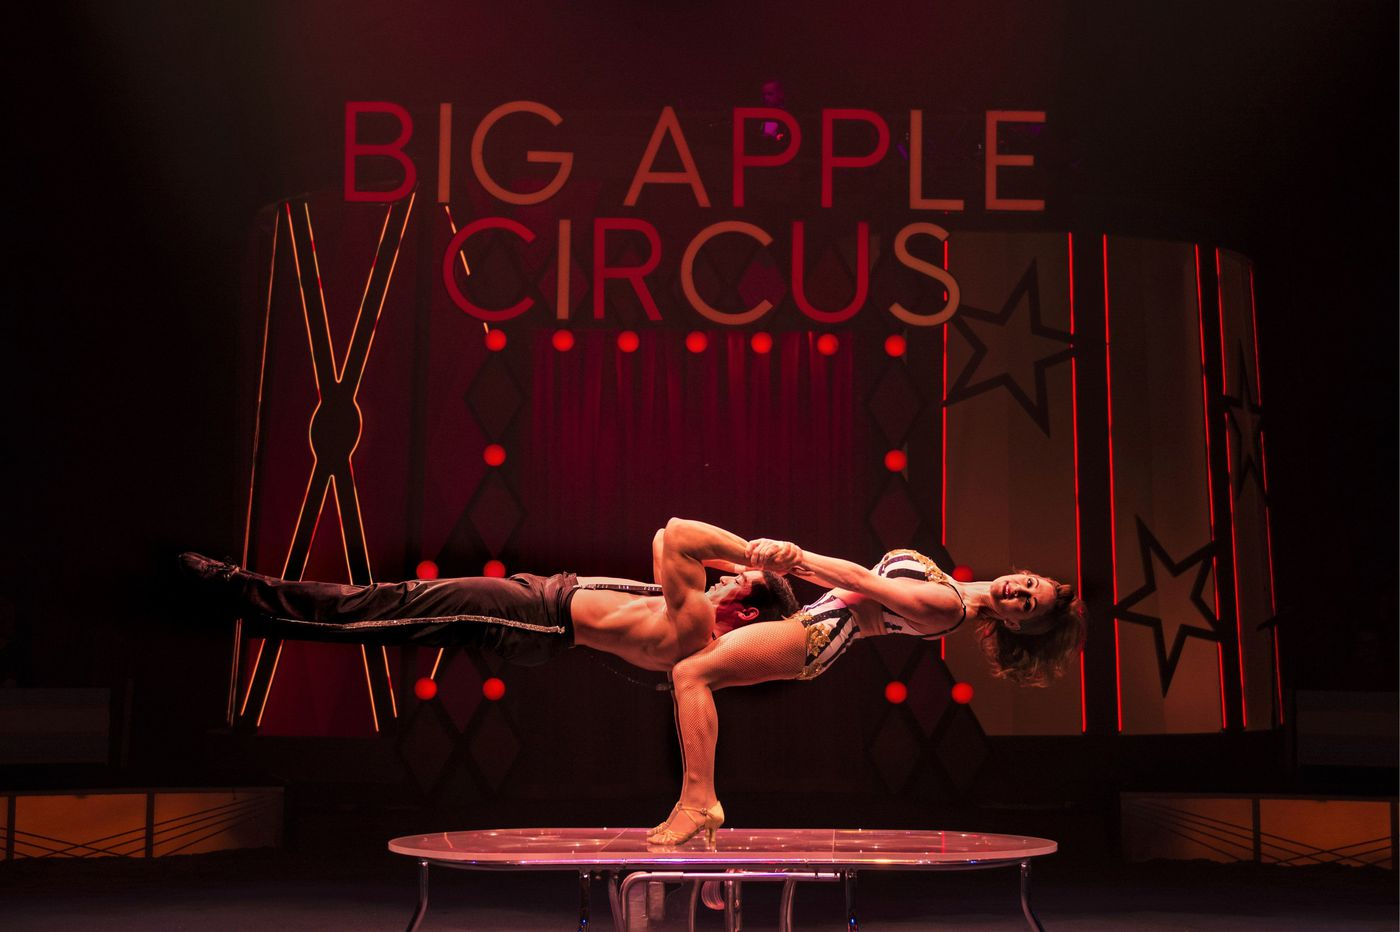 This Big Apple Circus performer built her career on lifting her husband — in 3-inch heels